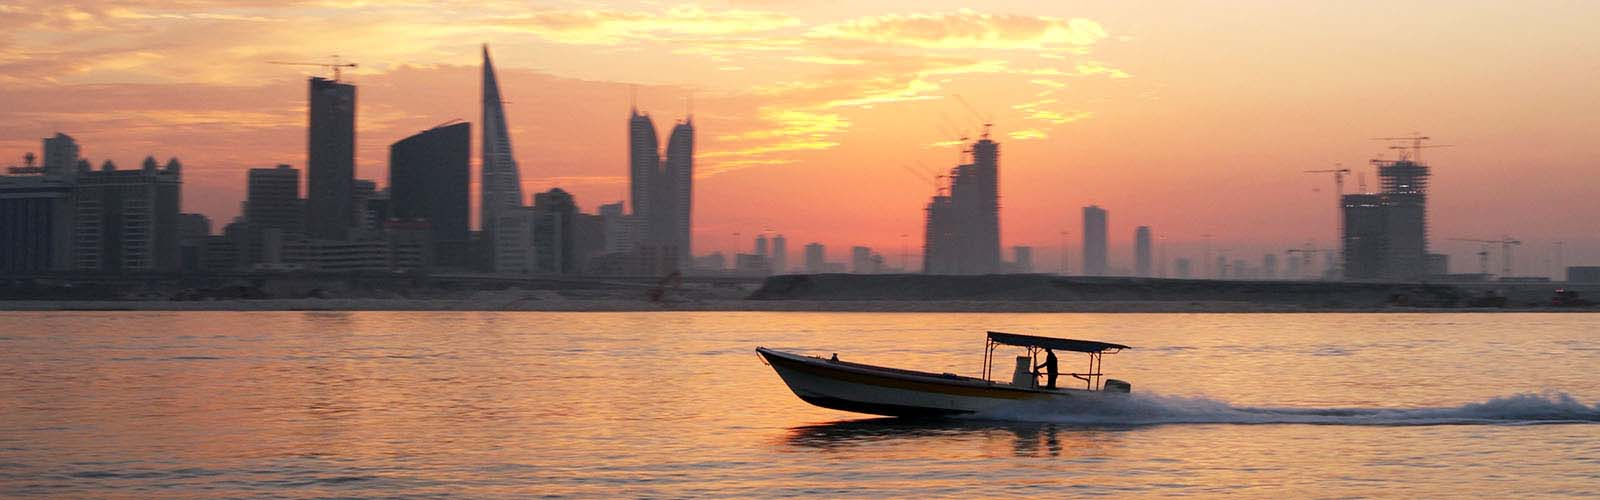 Boat sailing at sunset. Dubai skyline in the background